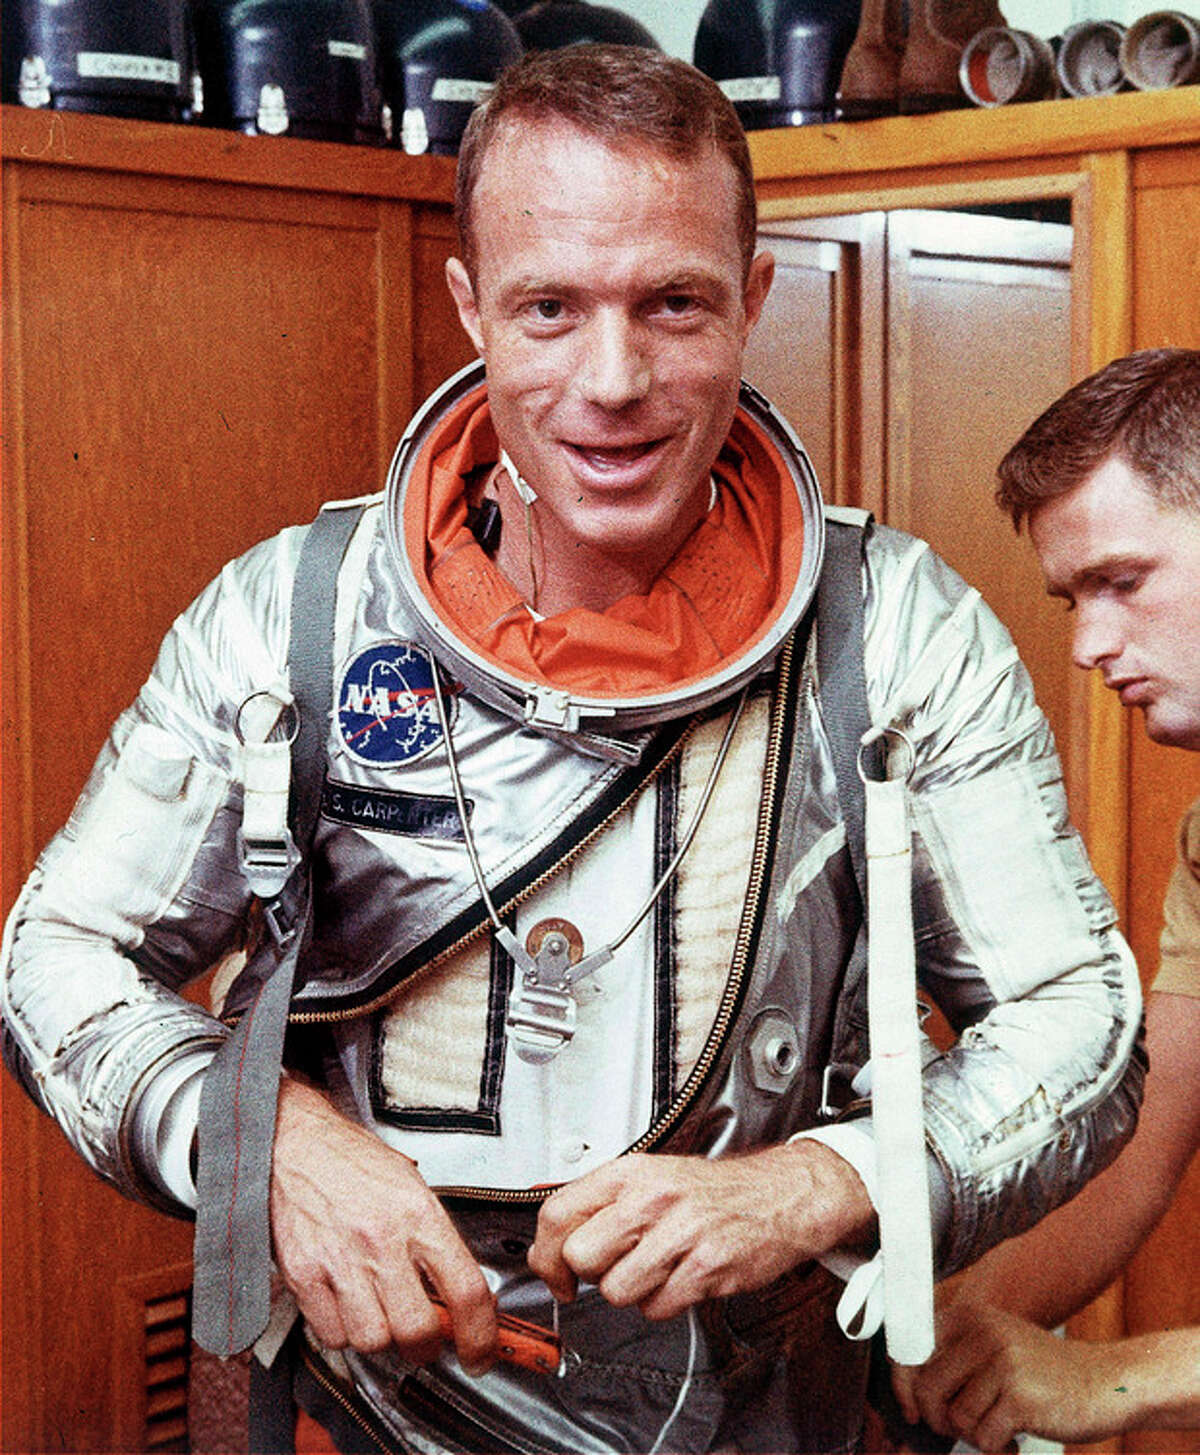 FILE - In this Aug. 1962 file photo, astronaut Scott Carpenter has his space suit adjusted by a technician in Cape Canaveral, Fla. Carpenter, the second American to orbit the Earth and one of the last surviving original Mercury 7 astronauts, died Thursday, Oct. 10, 2013. He was 88. (AP Photo, File)